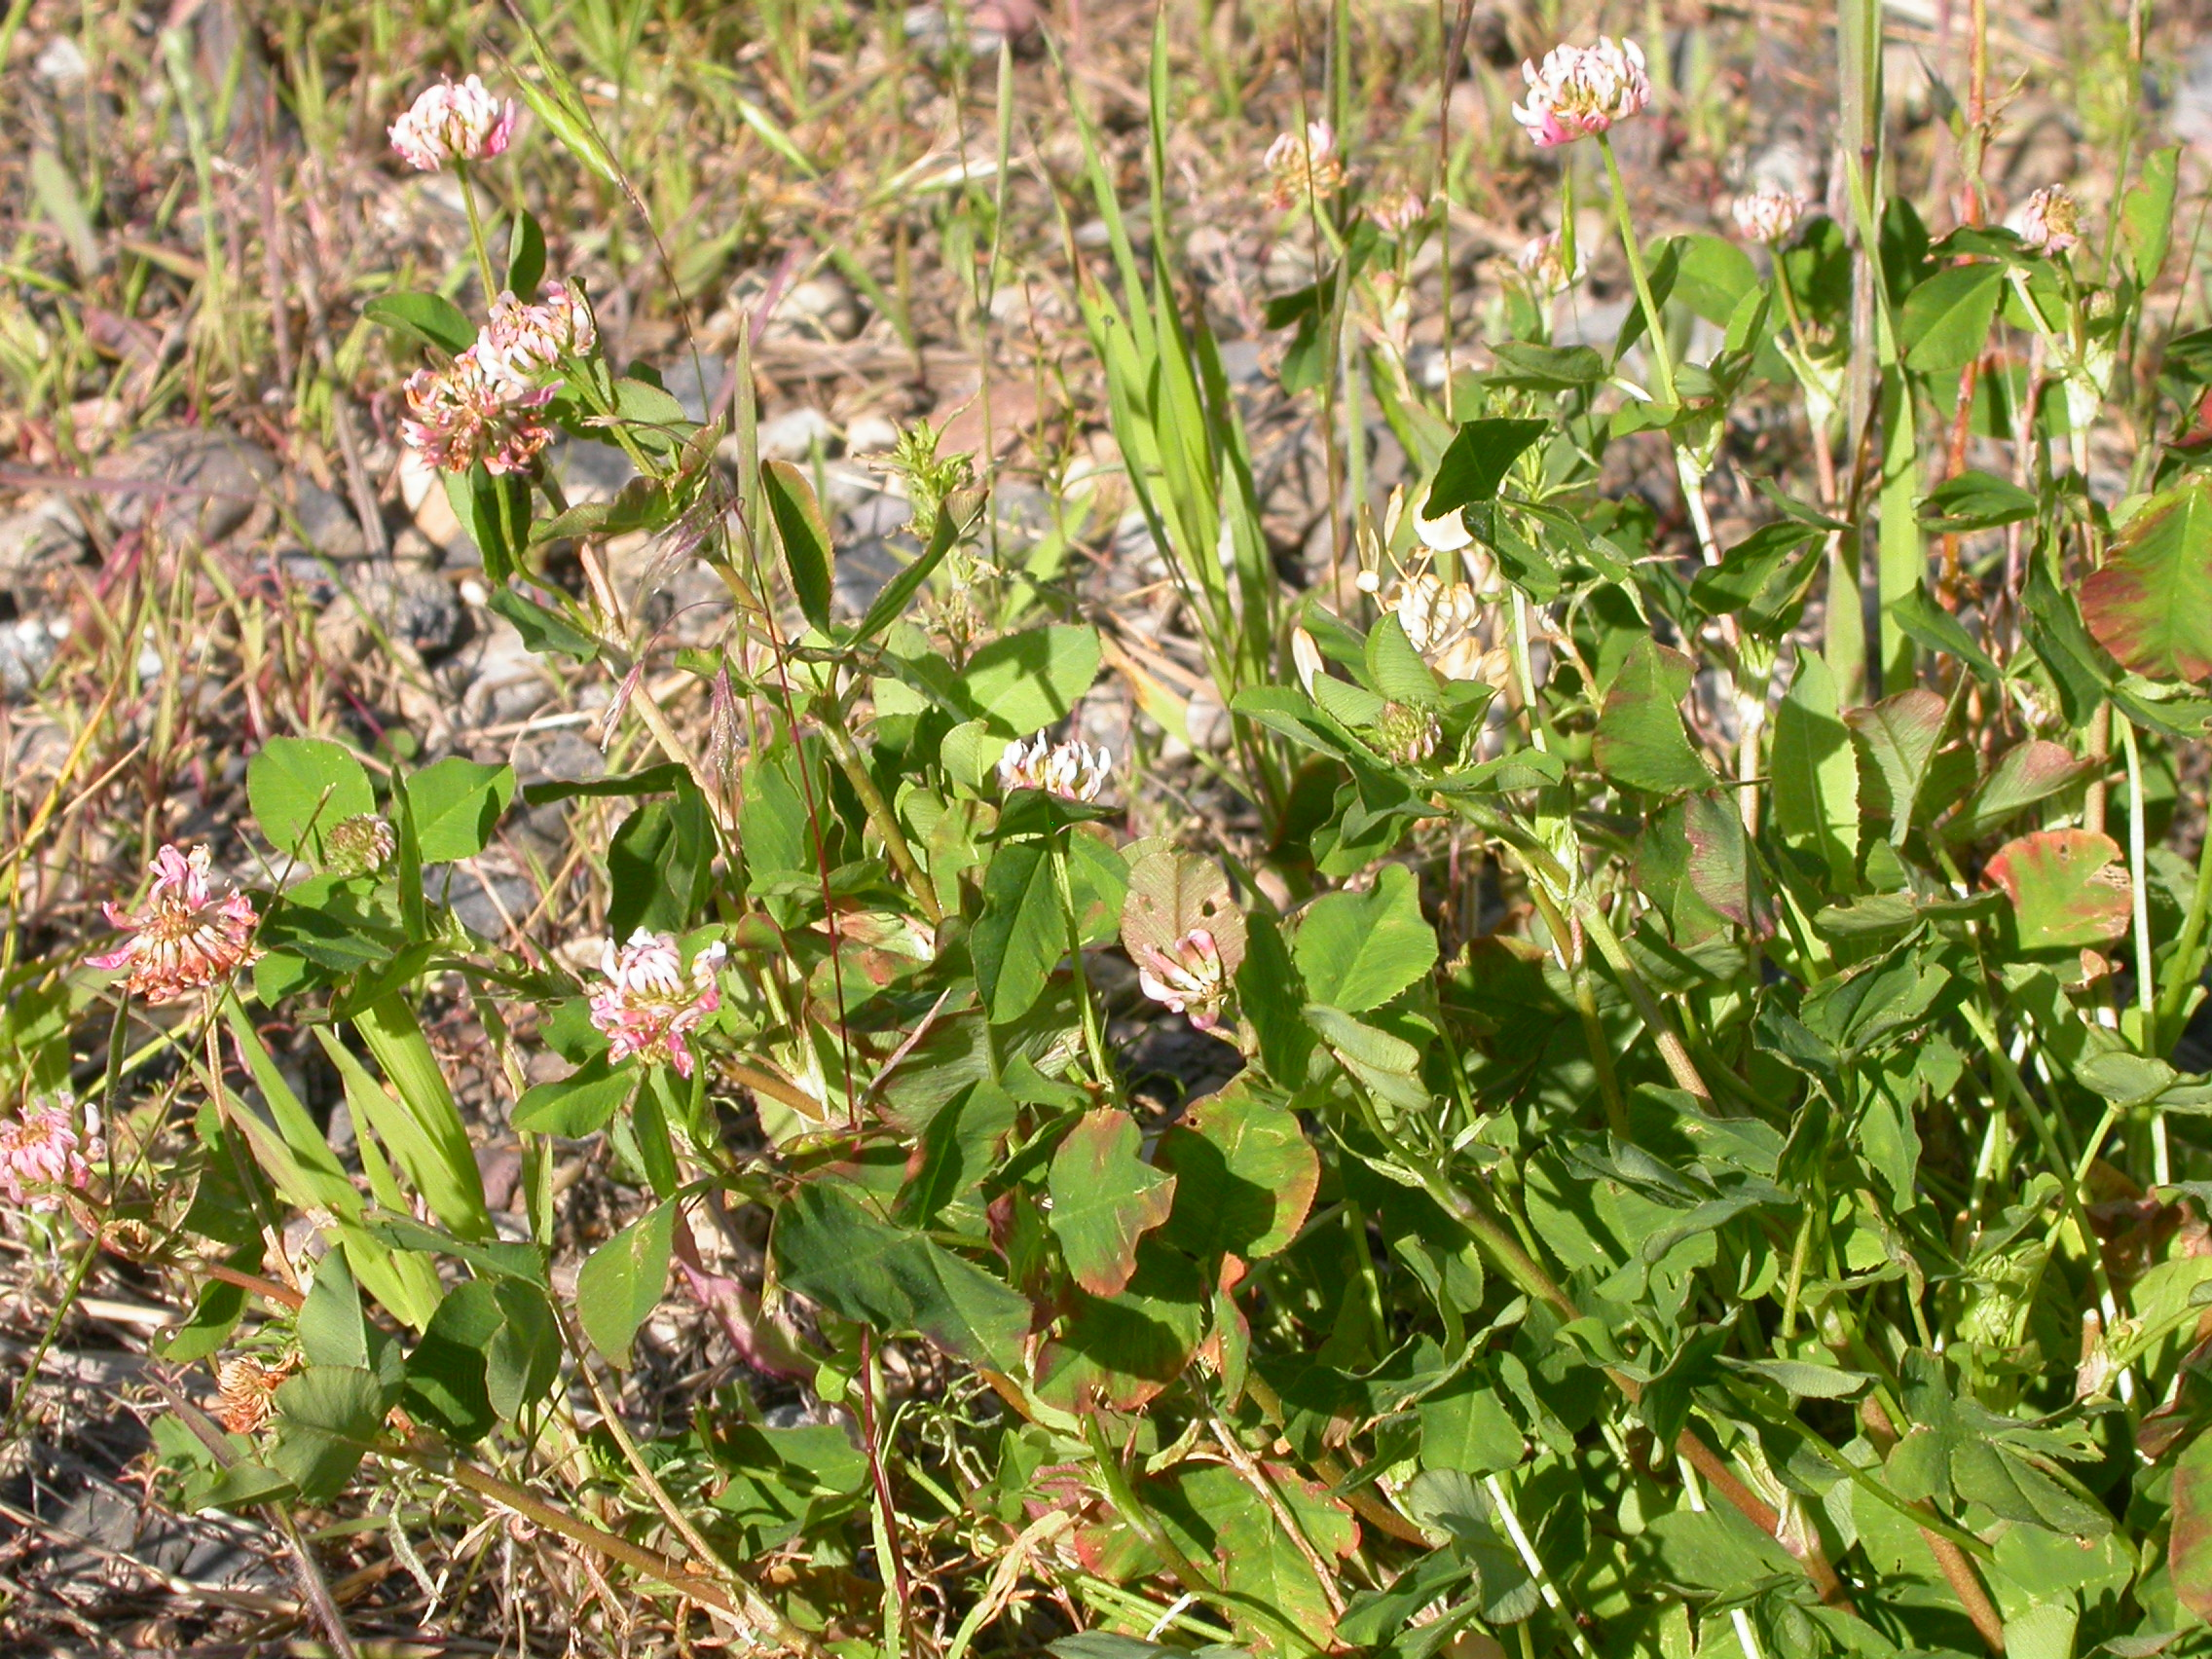 By Matt Lavin from Bozeman, Montana, USA (Trifolium hybridum Uploaded by Tim1357) [CC BY-SA 2.0 (http://creativecommons.org/licenses/by-sa/2.0)], via Wikimedia Commons